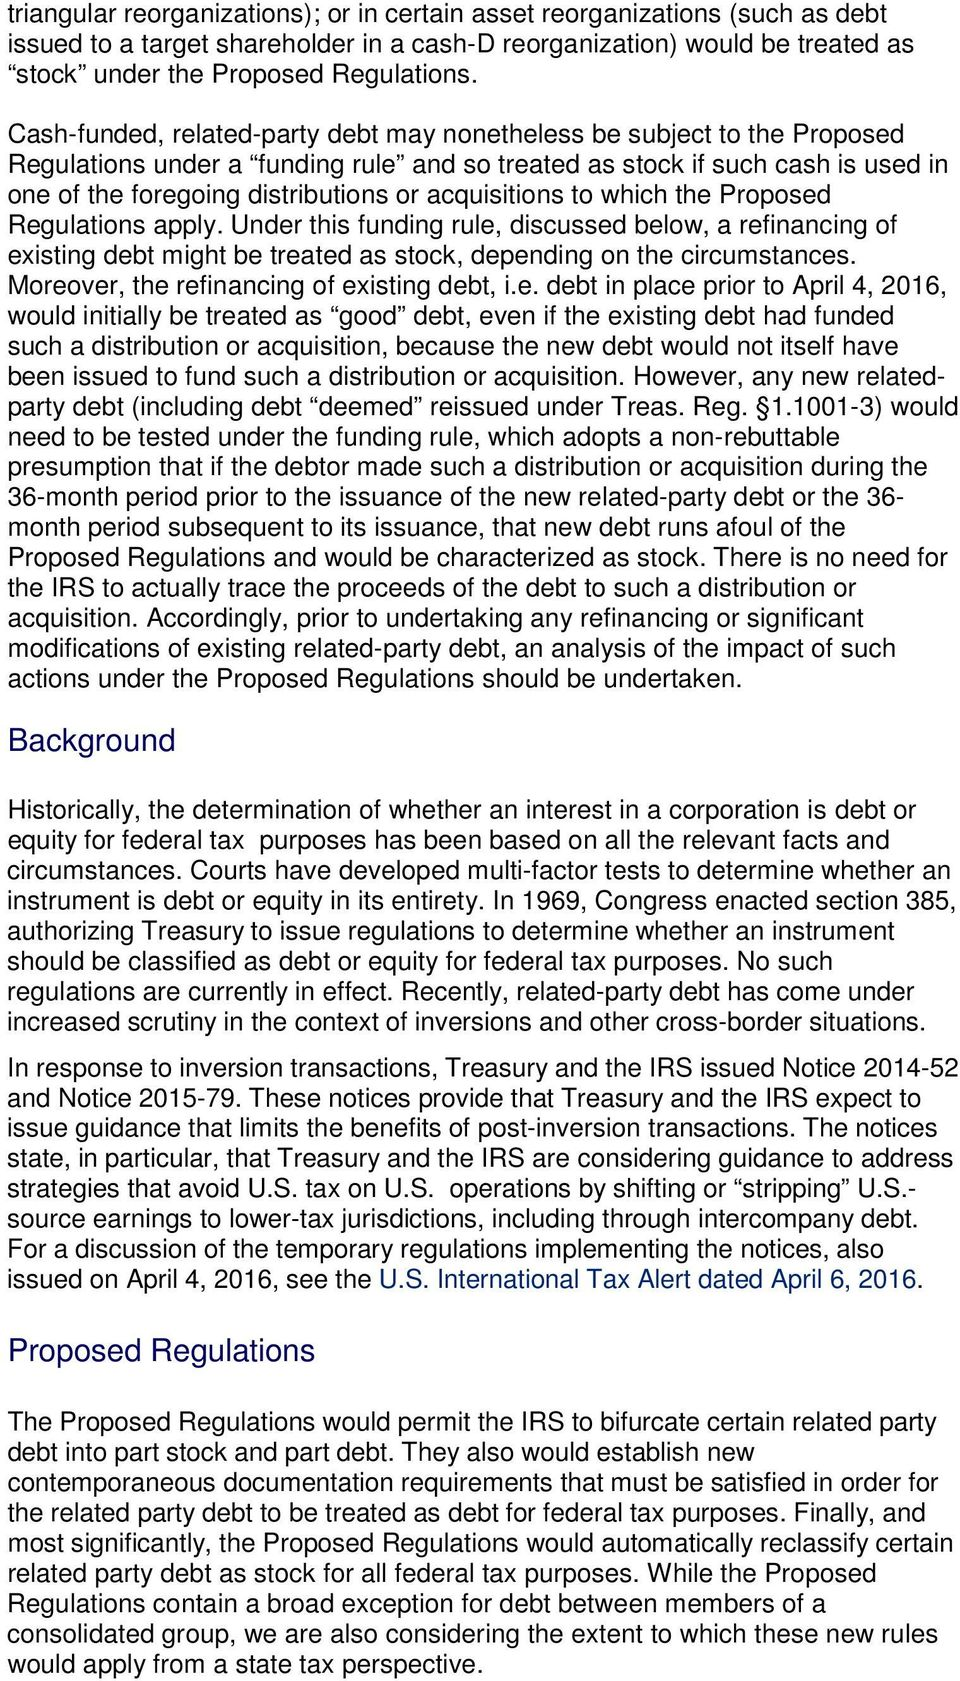 acquisitions to which the Proposed Regulations apply. Under this funding rule, discussed below, a refinancing of existing debt might be treated as stock, depending on the circumstances.